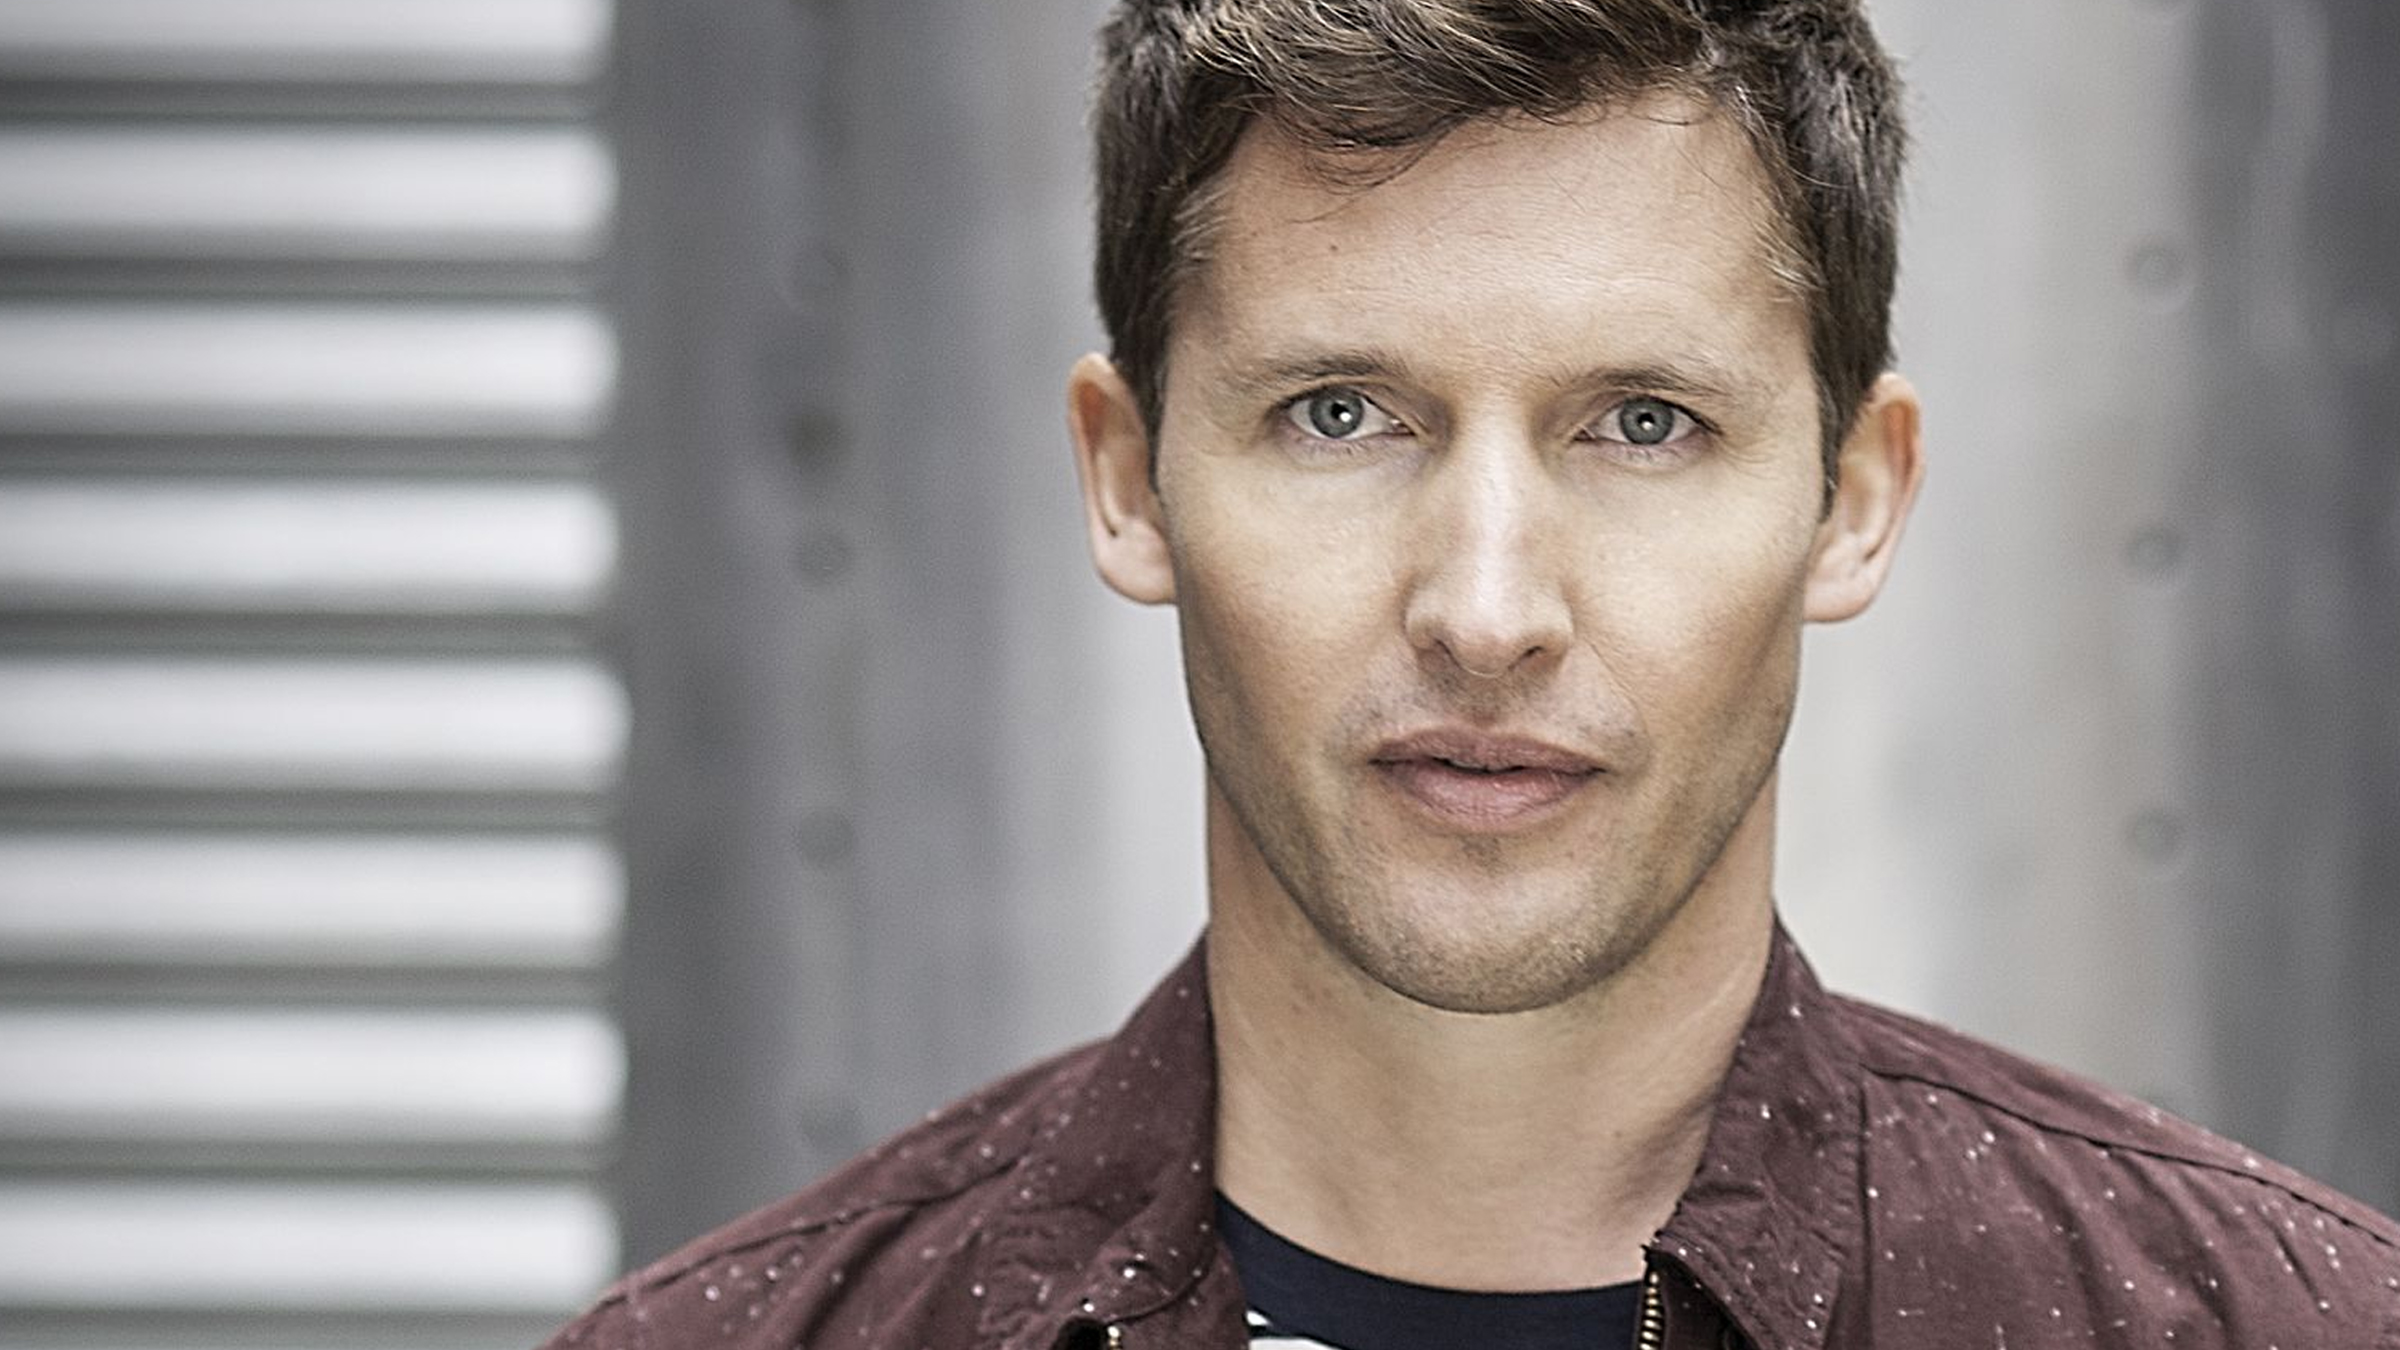 James blunt album teaser